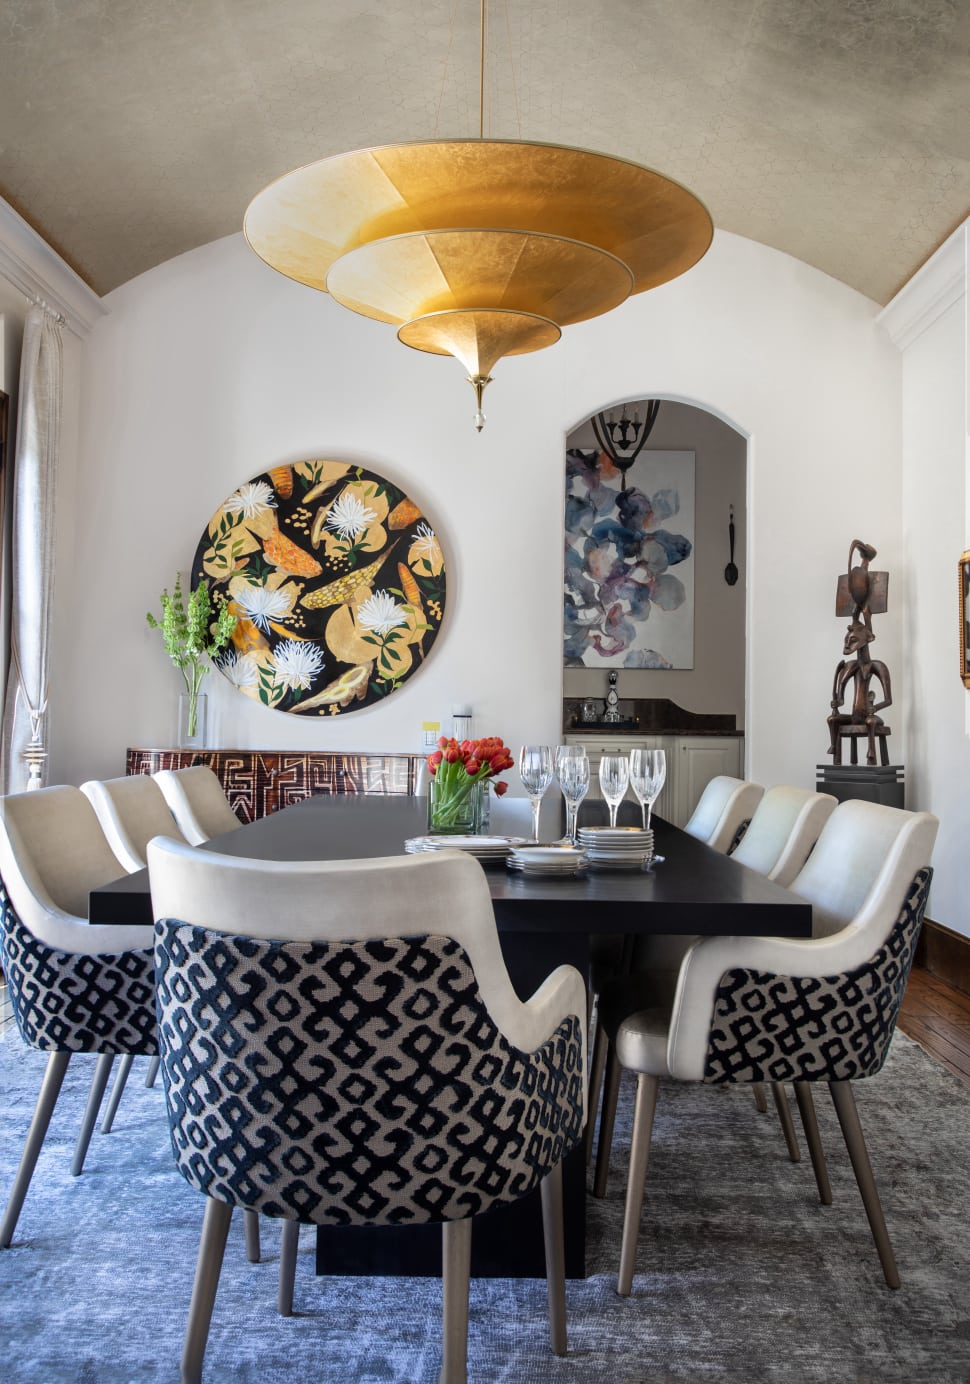 Circle Drive Art Collection Using Art In Interior Design